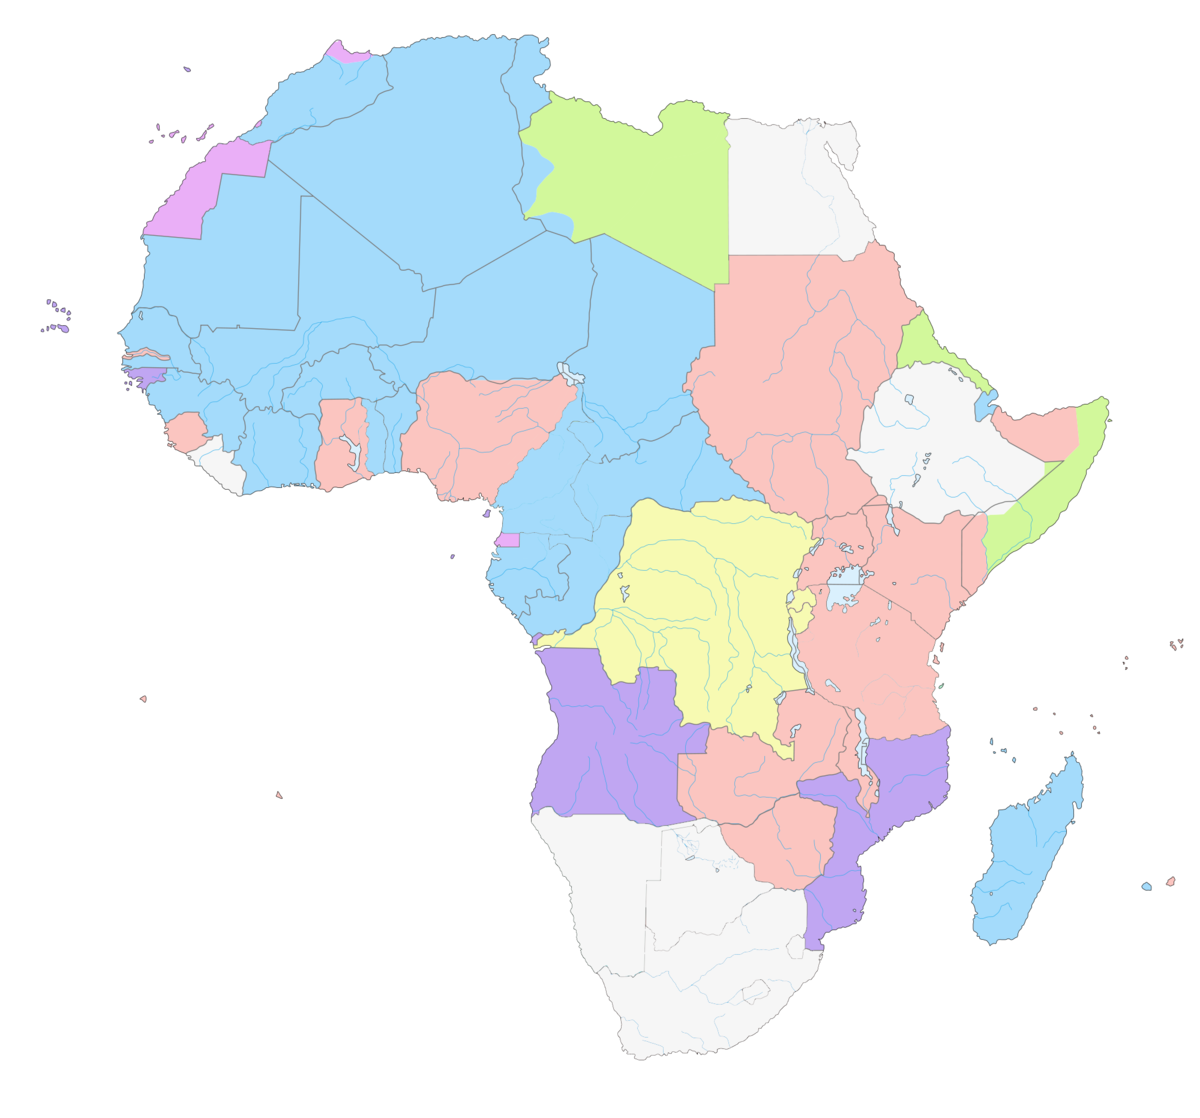 Map Of Africa 1930 File:Colonial Map Of Africa in 1930.png   Wikimedia Commons